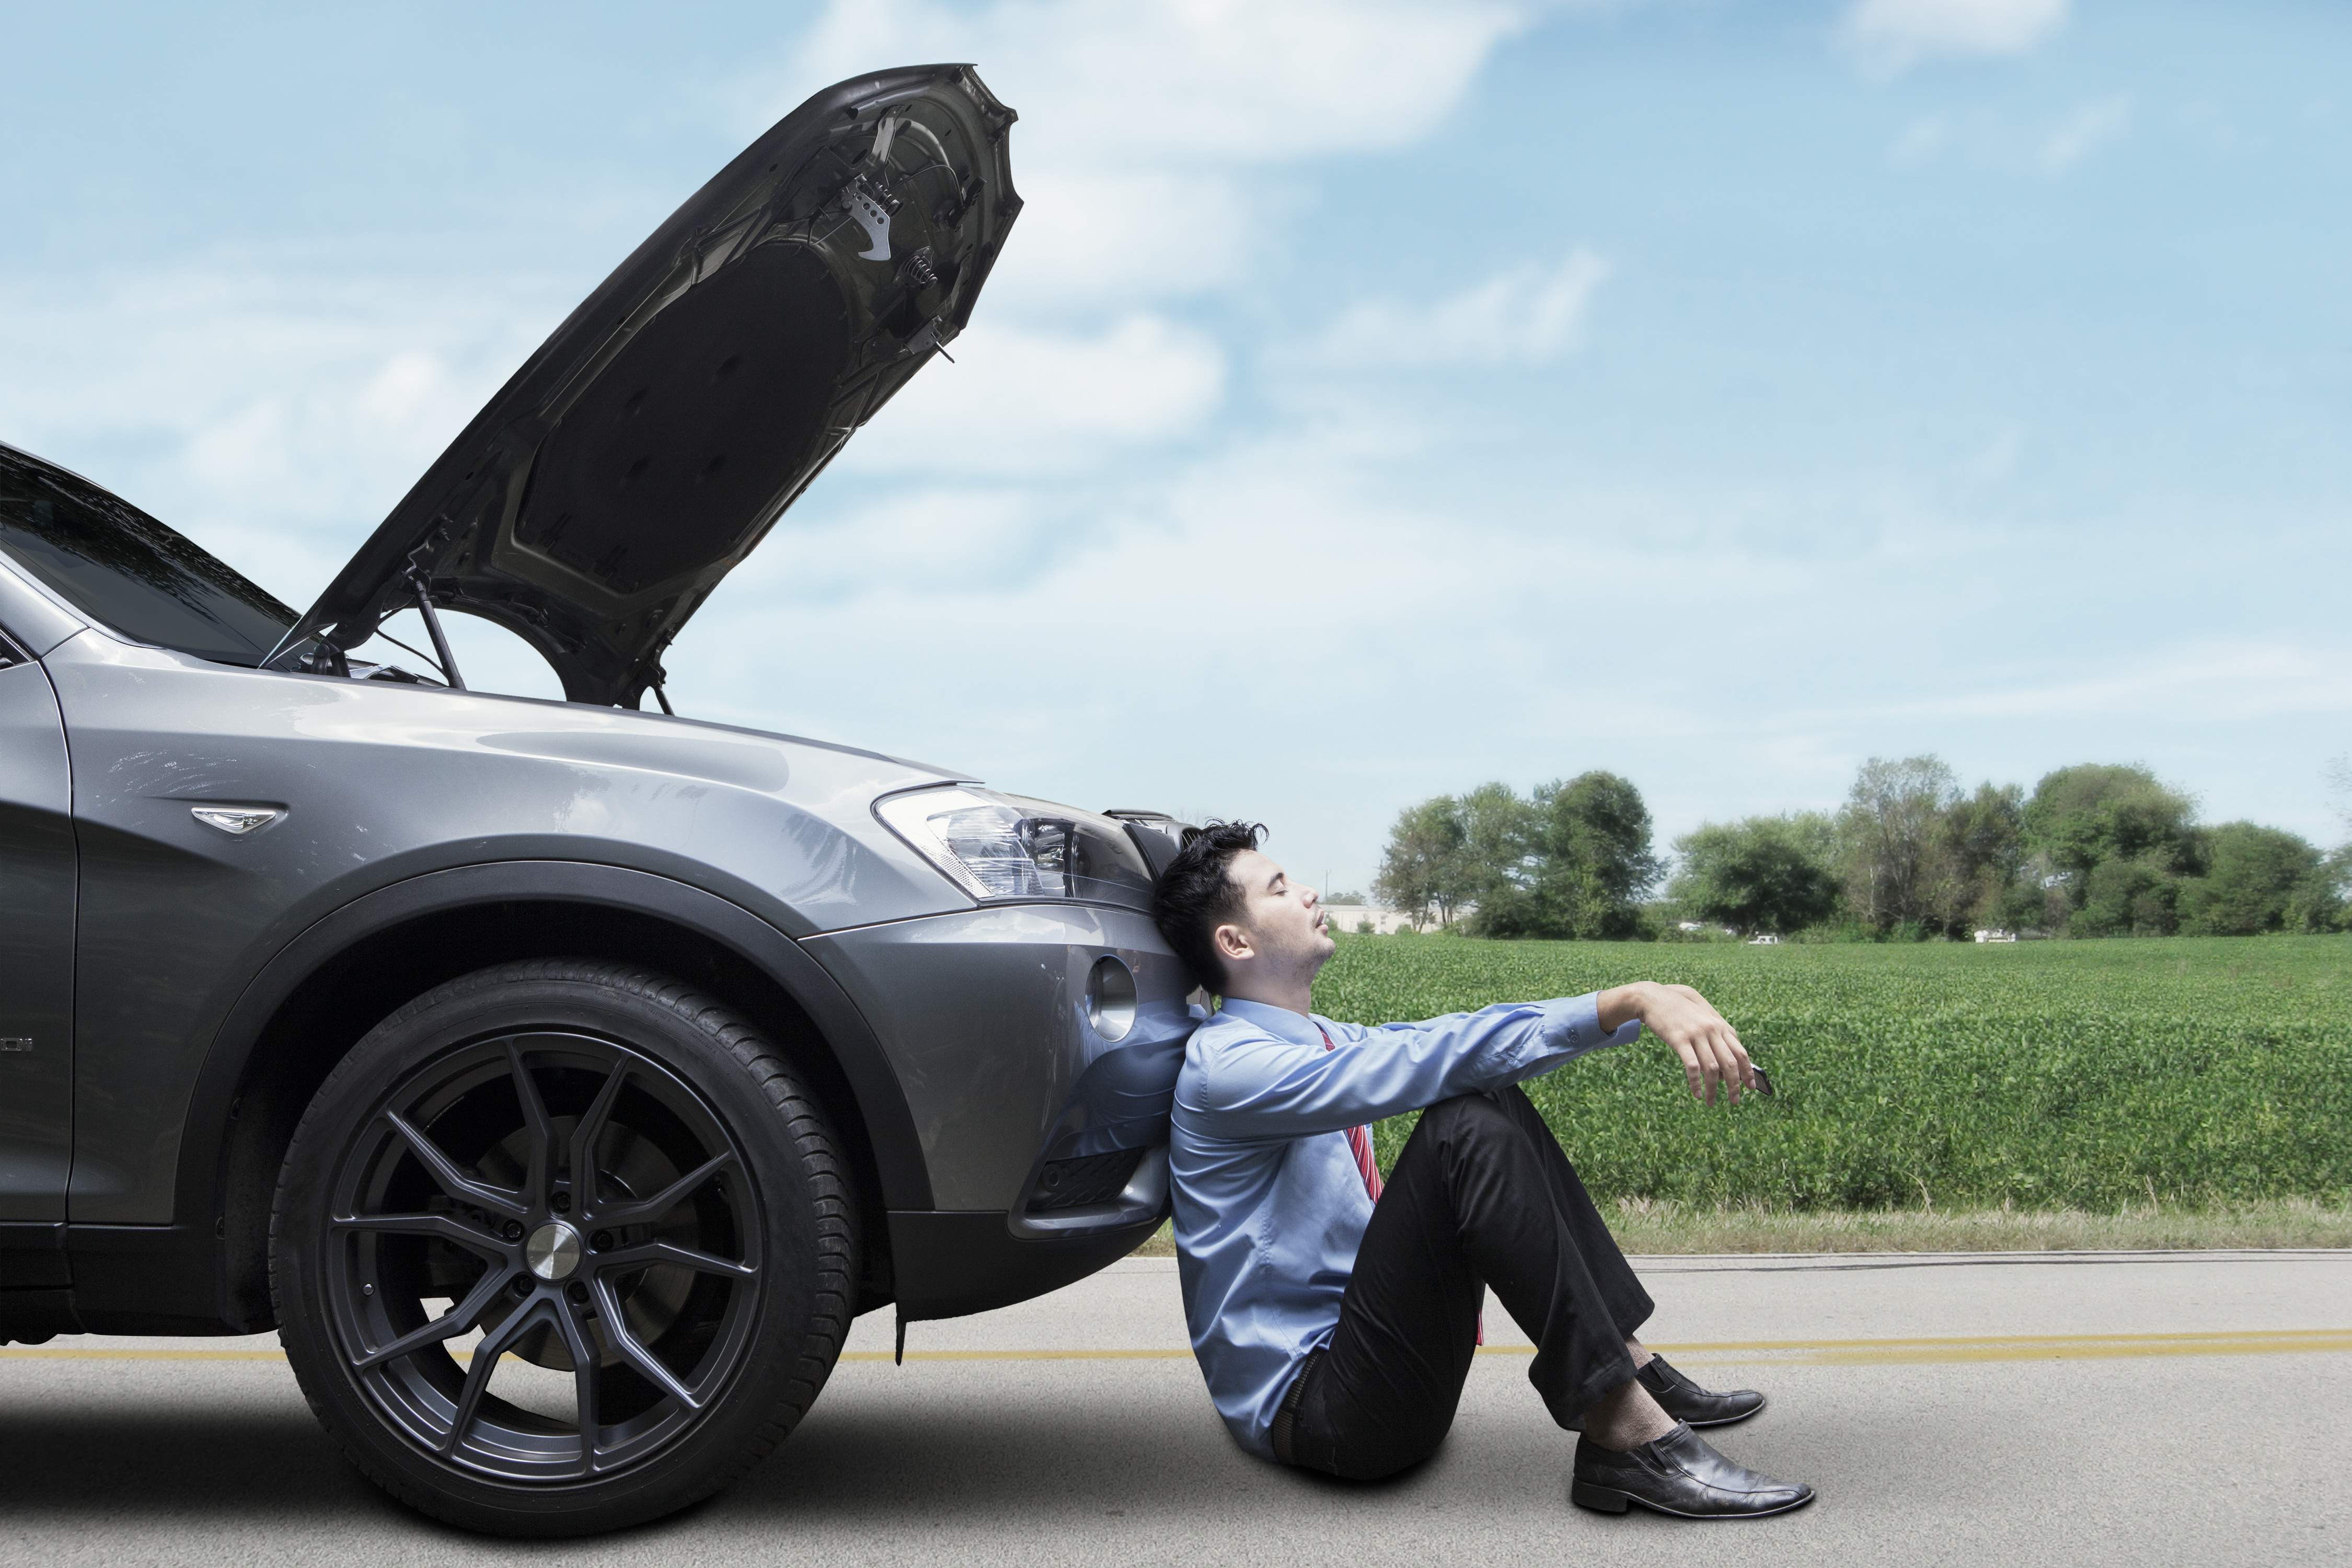 Towing Service - Why You Should Choose Ahead of Time